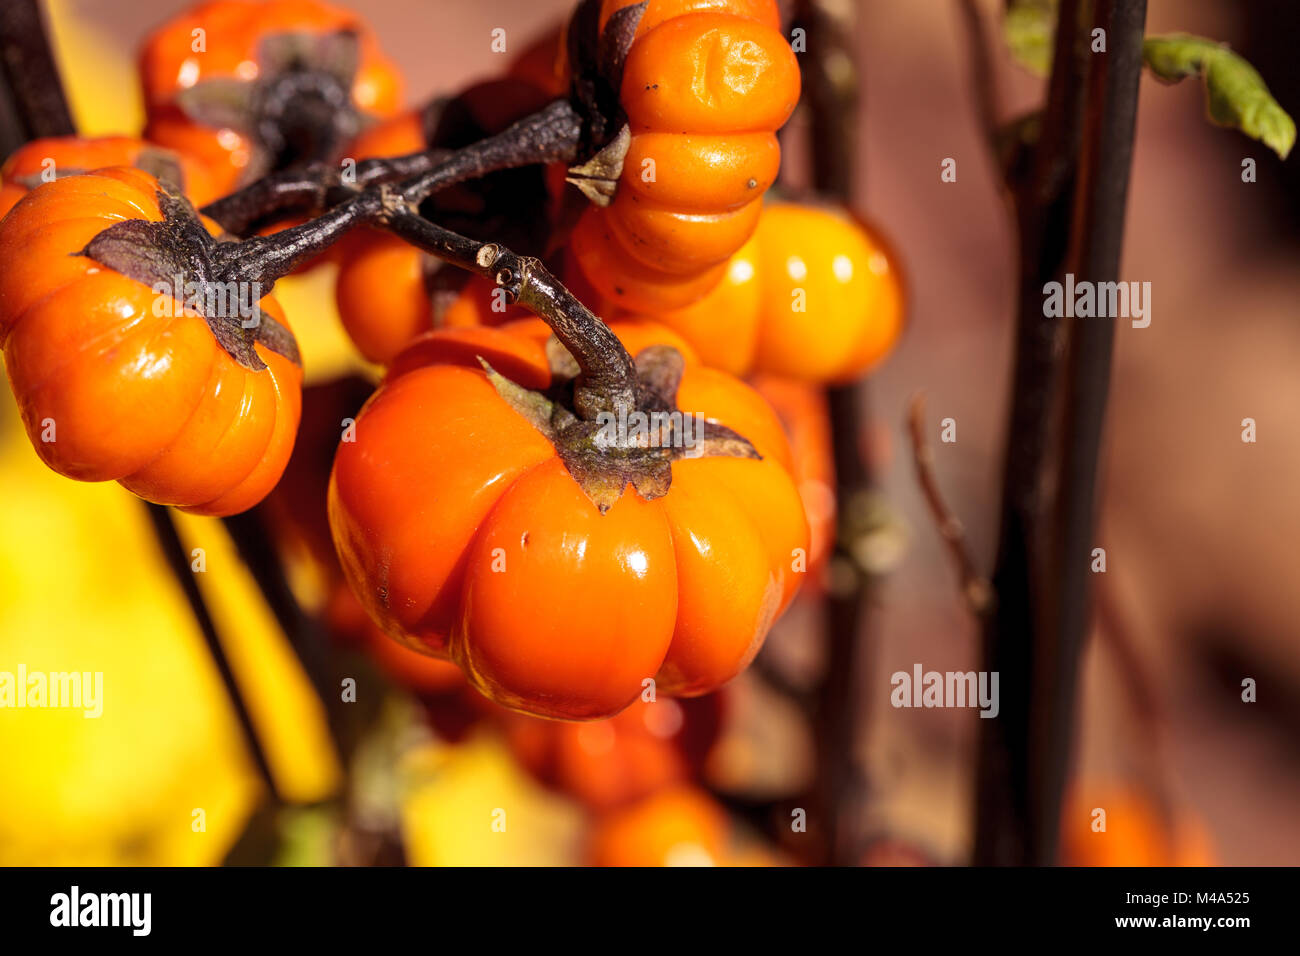 Pumpkin tree scientifically known as Solanum integrifolium - Stock Image